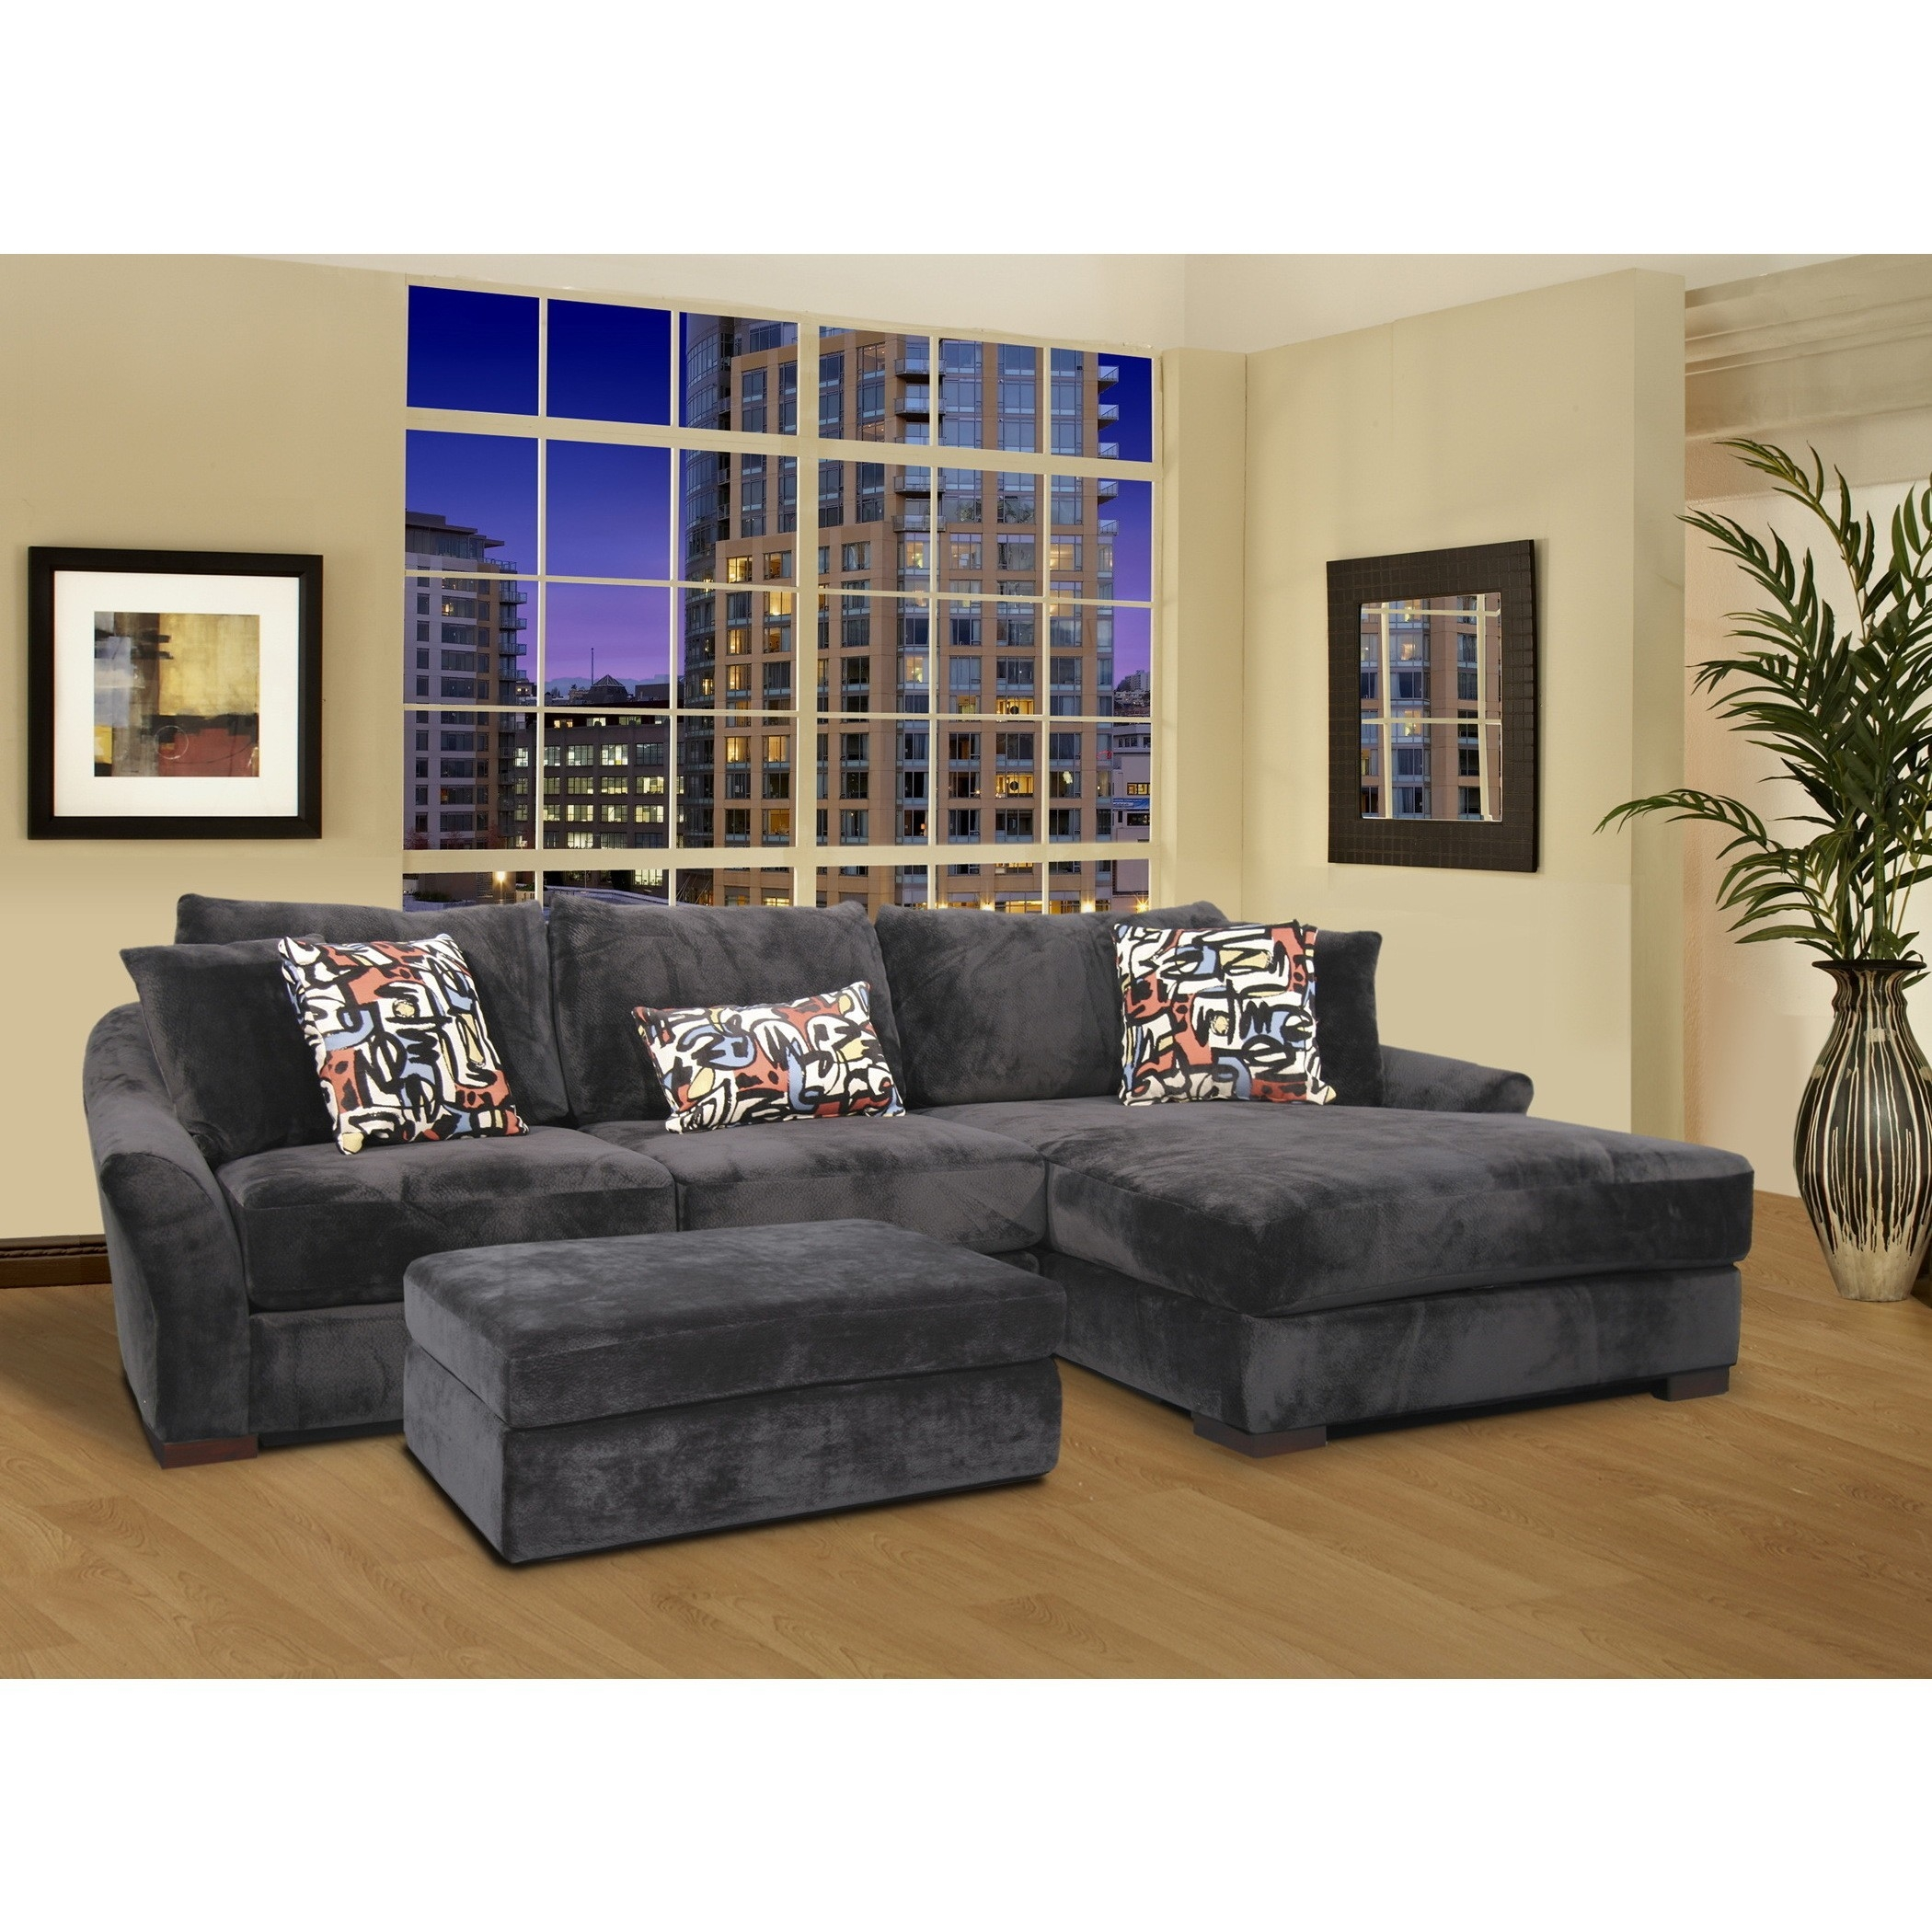 Sofa Elegant Living Room Furniture Design With Oversized Couch Within Large Sofa Chairs (Image 10 of 15)